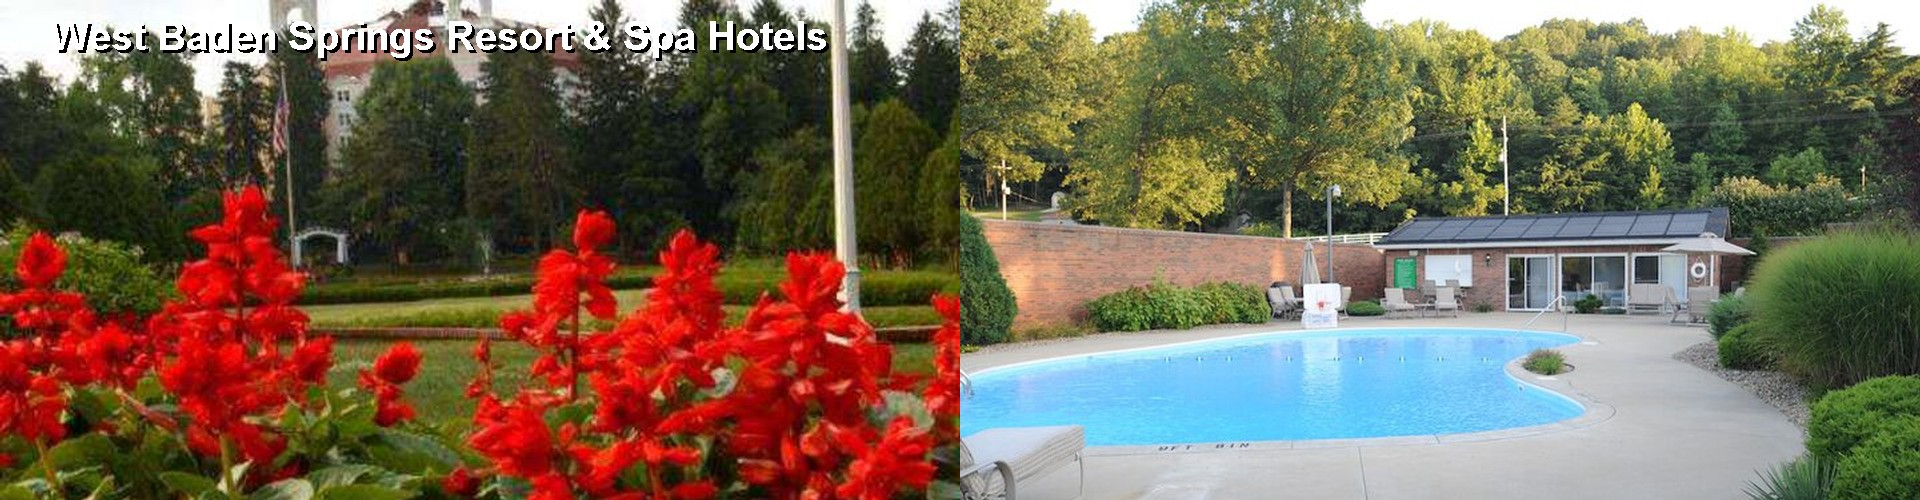 5 Best Hotels near West Baden Springs Resort & Spa